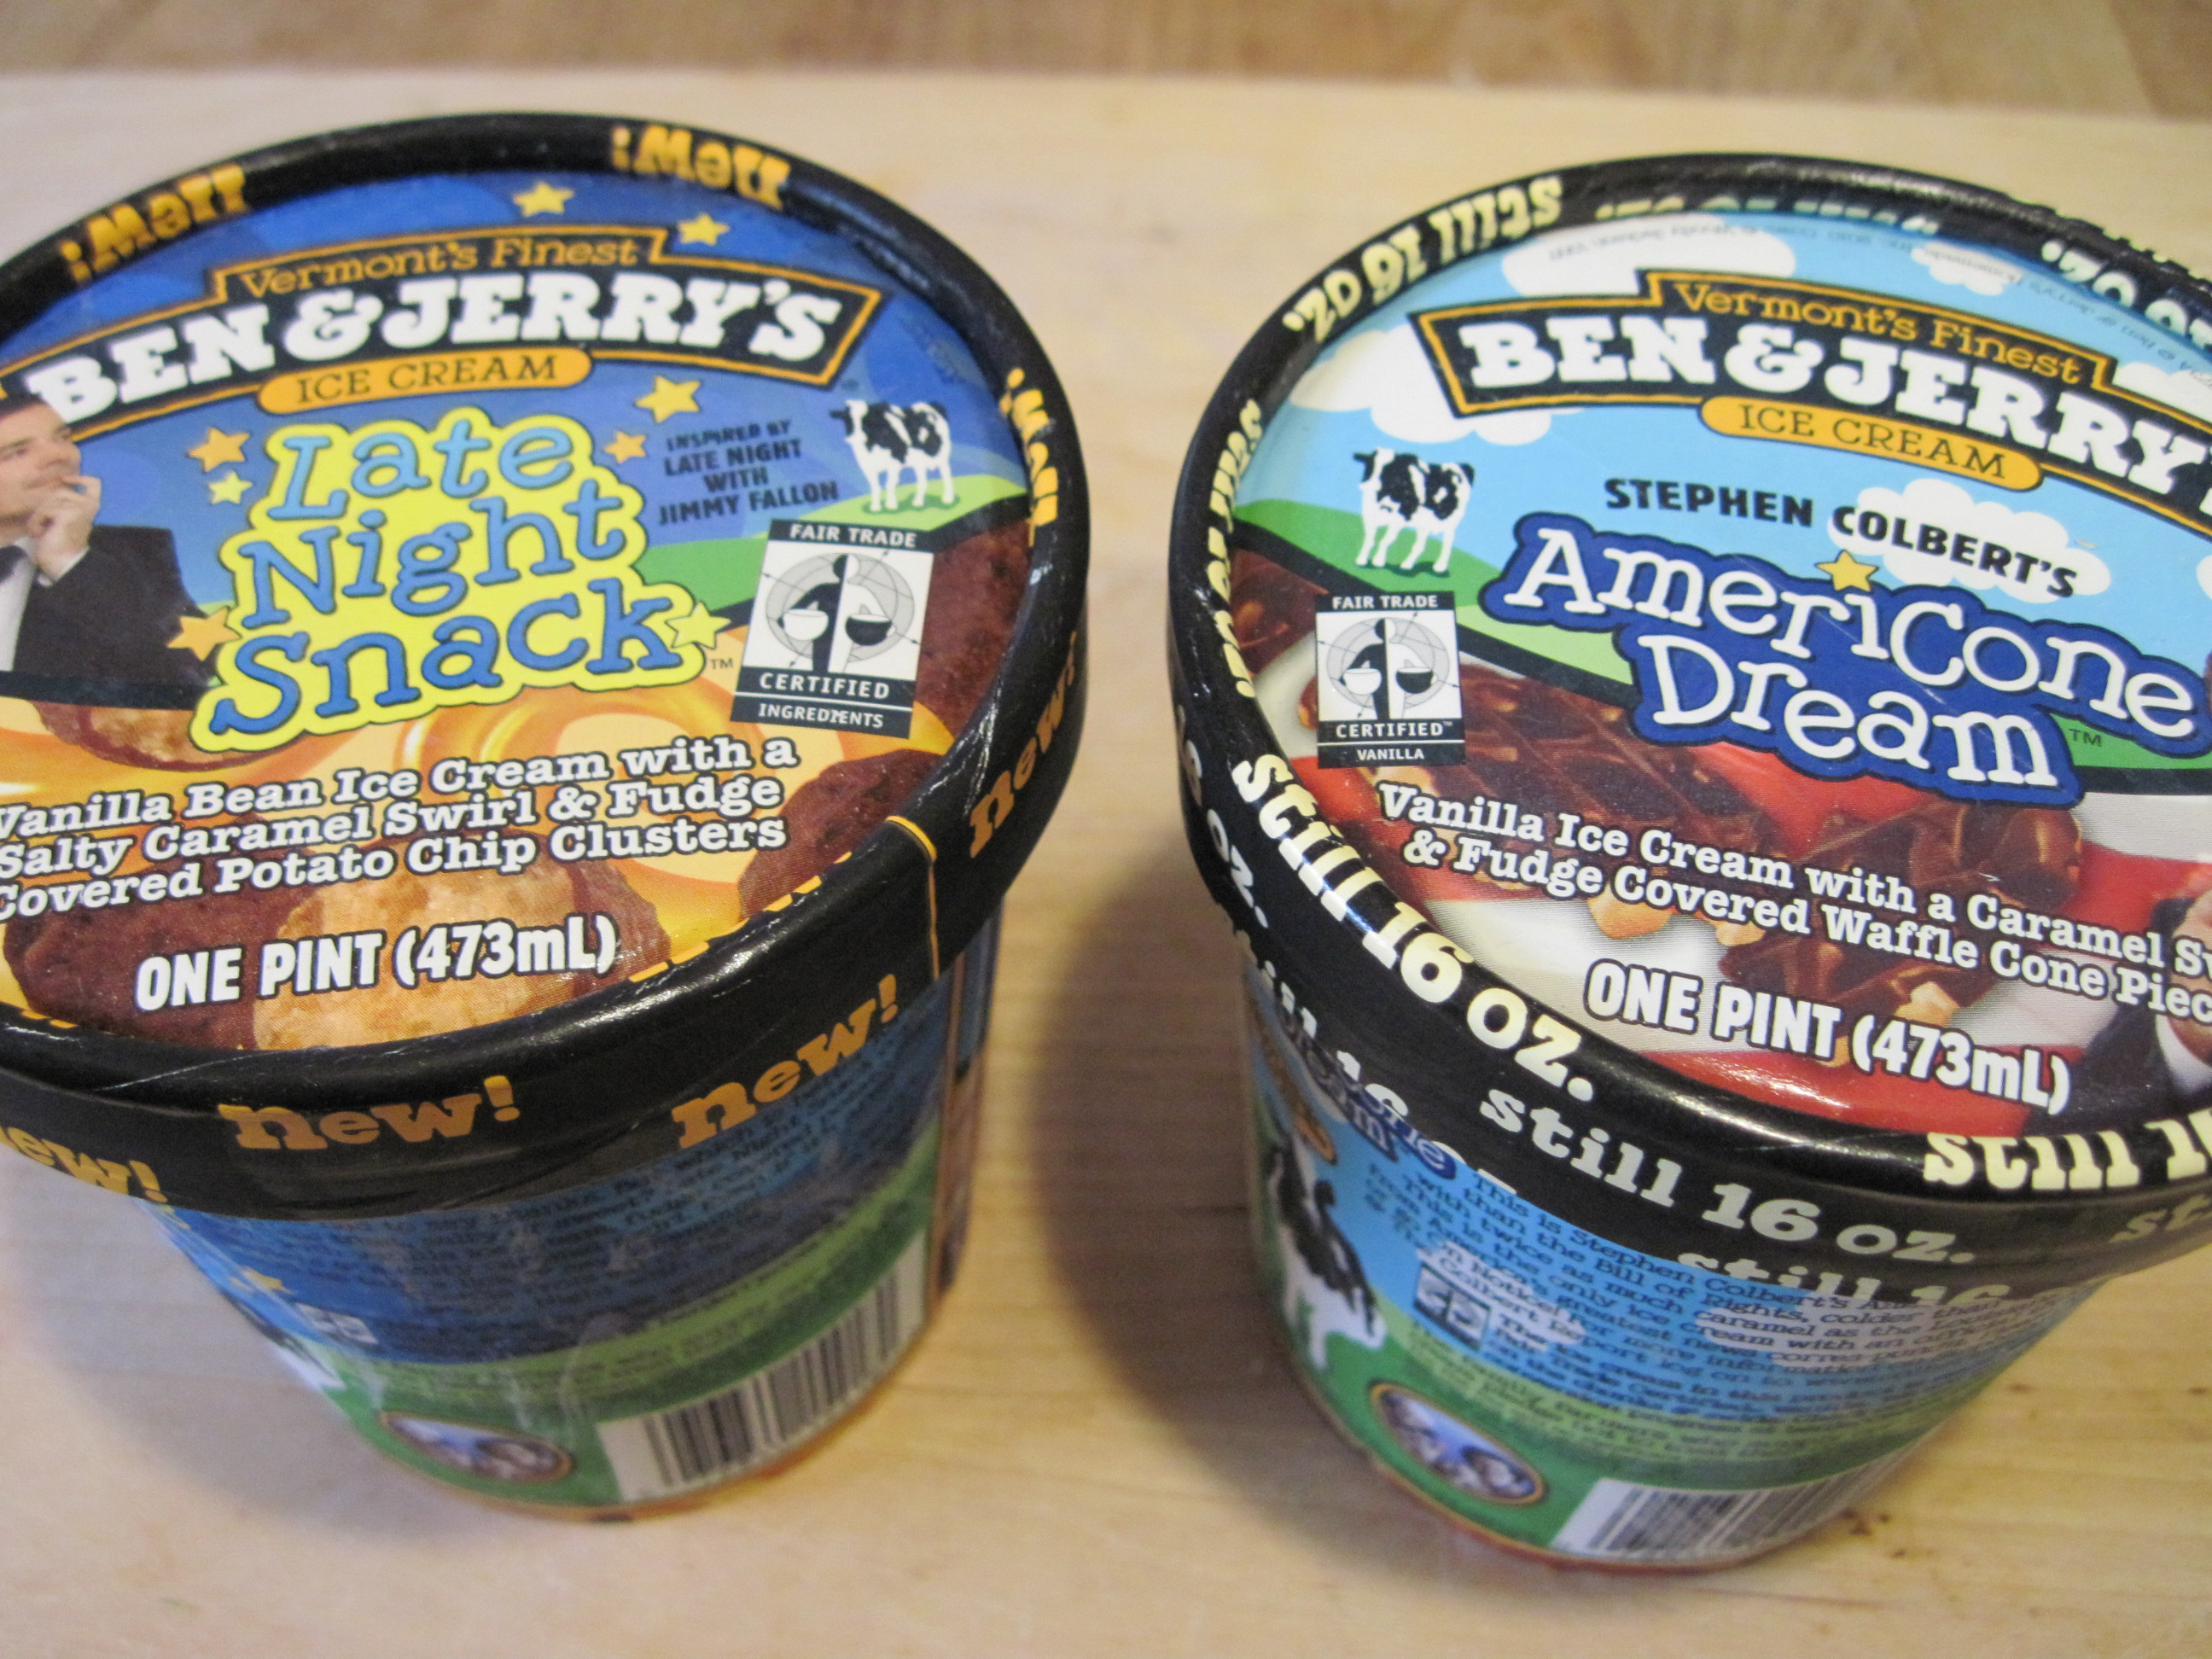 Tasting Tuesday Ben And Jerry S Late Night Snack Vs Americone Dream With Video The Practical Cook The american dream is the belief that anyone, regardless of where they were born or what class they were born into, can attain their own version of success in a society where upward mobility is possible. late night snack vs americone dream